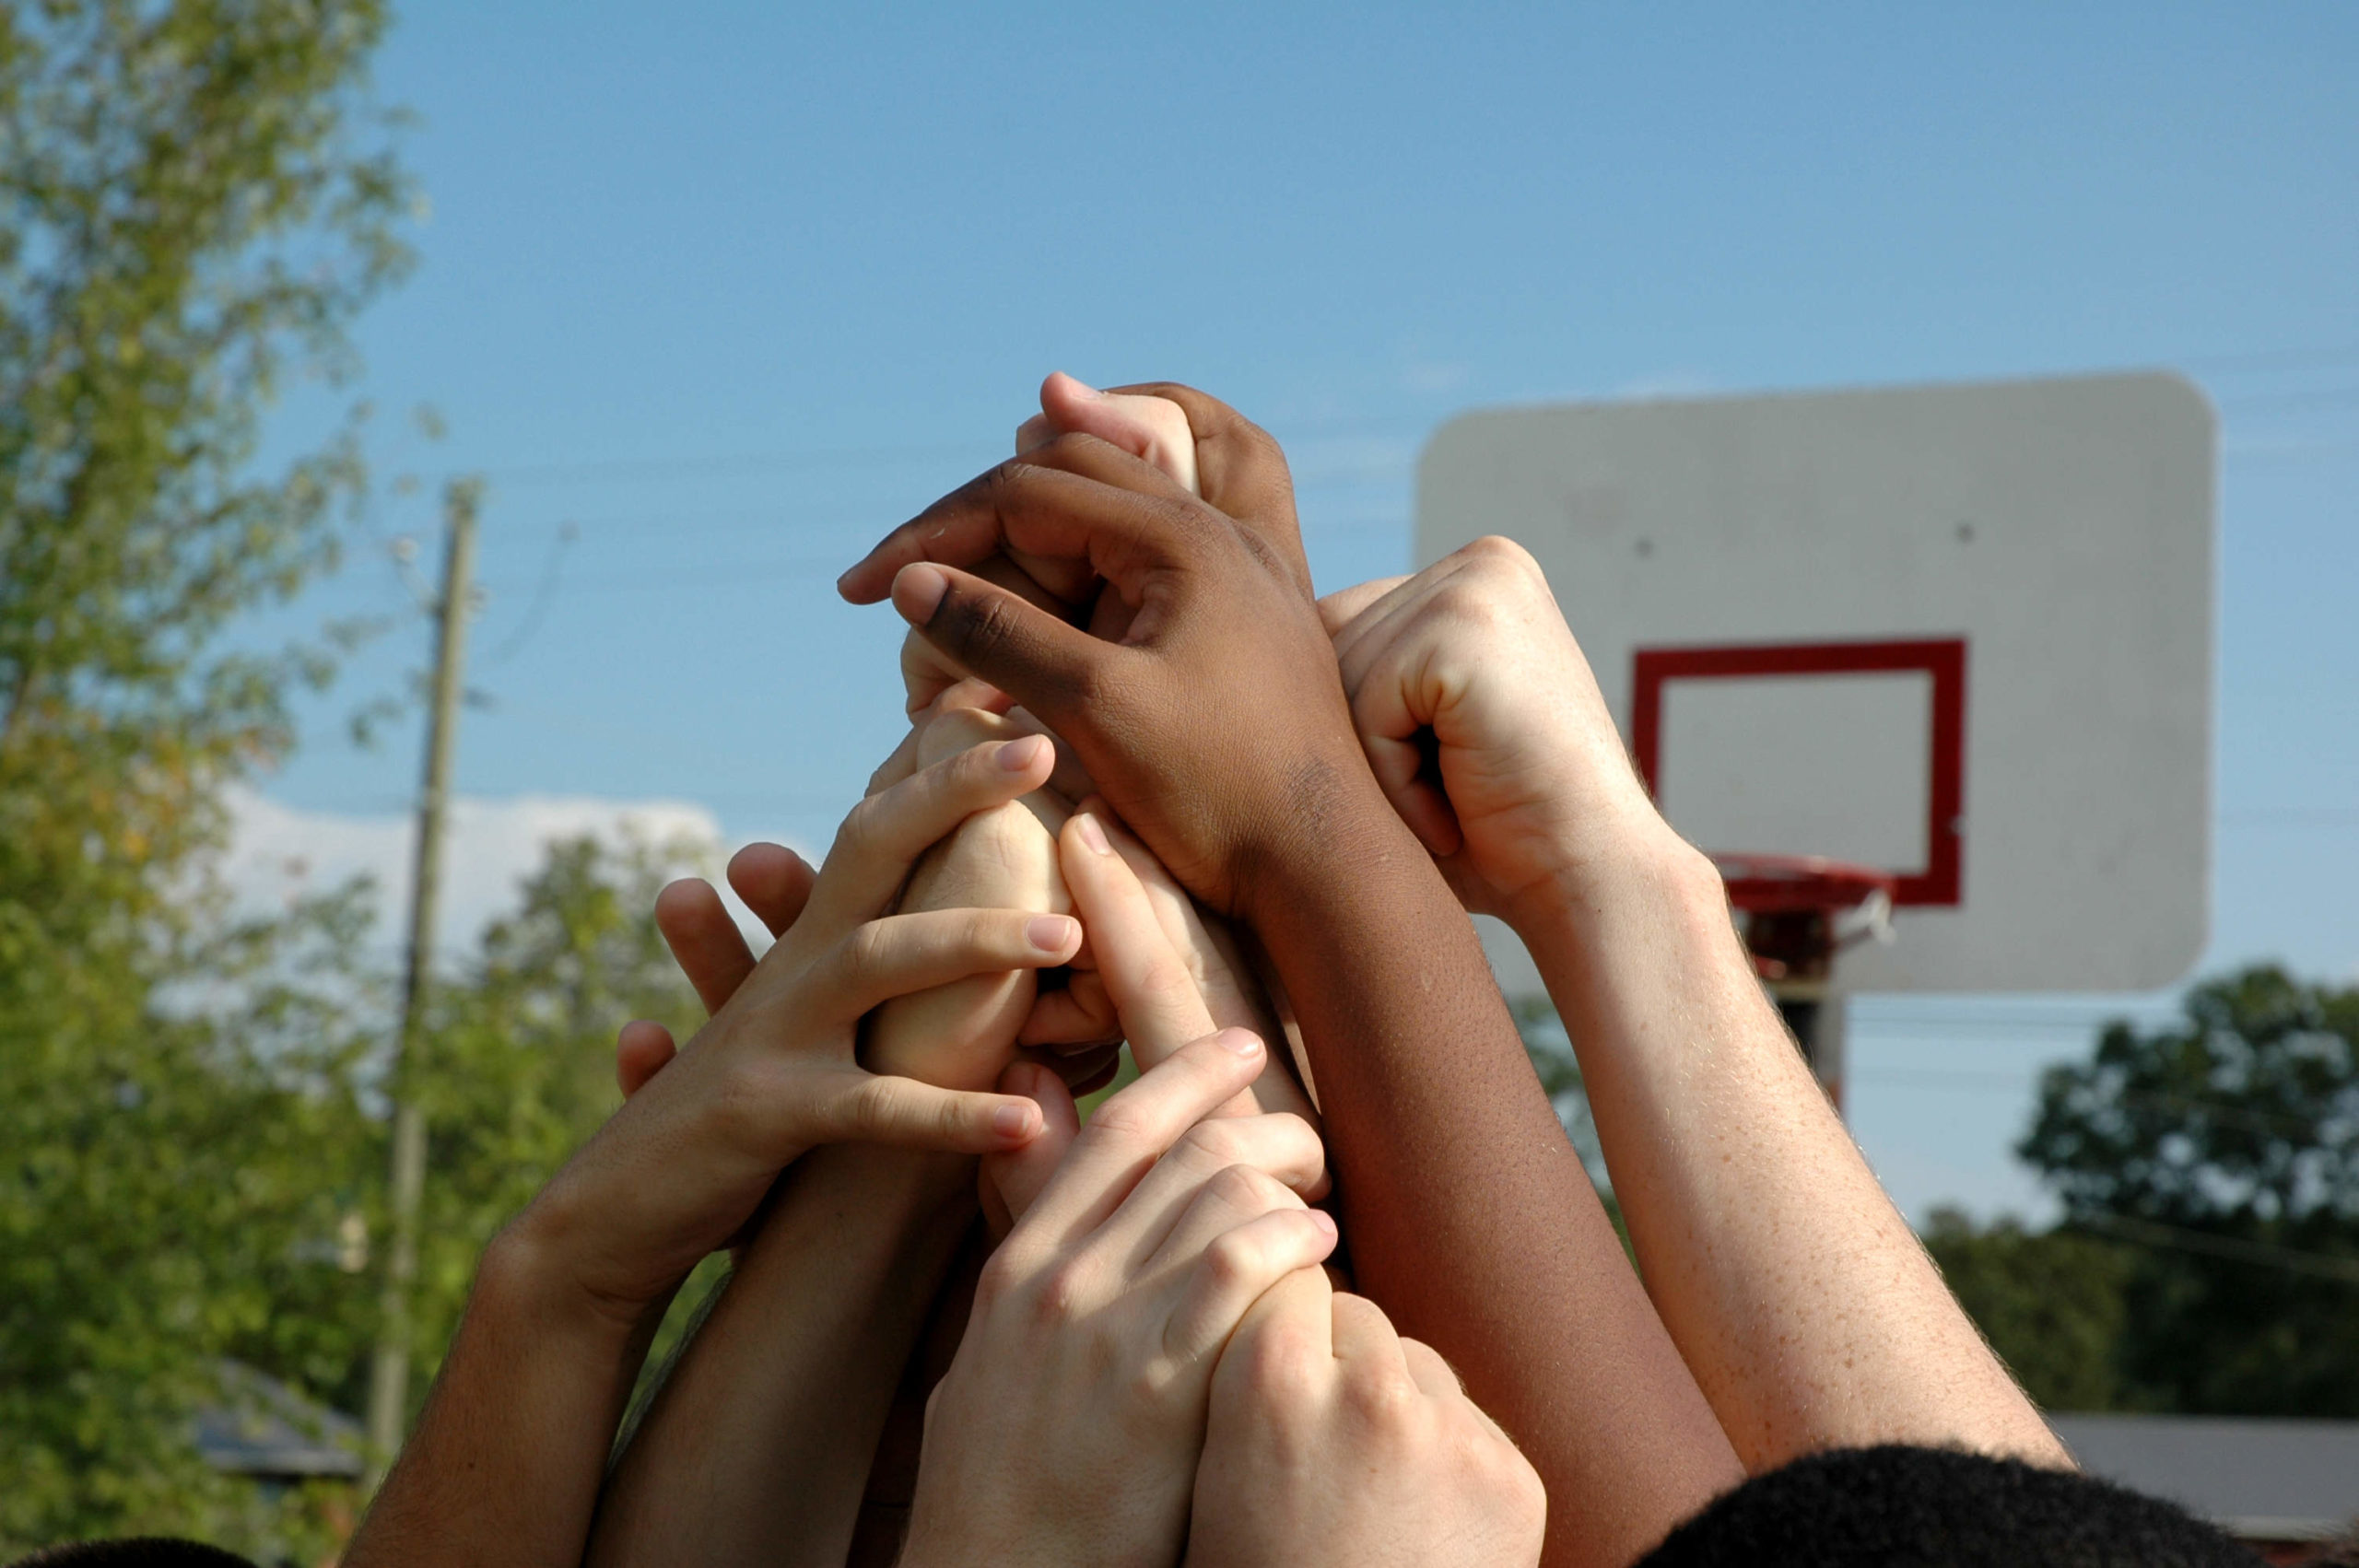 Close-up of several children extending their arms into the air to form a pyramid. In the background are trees, power lines and a basketball hoop.